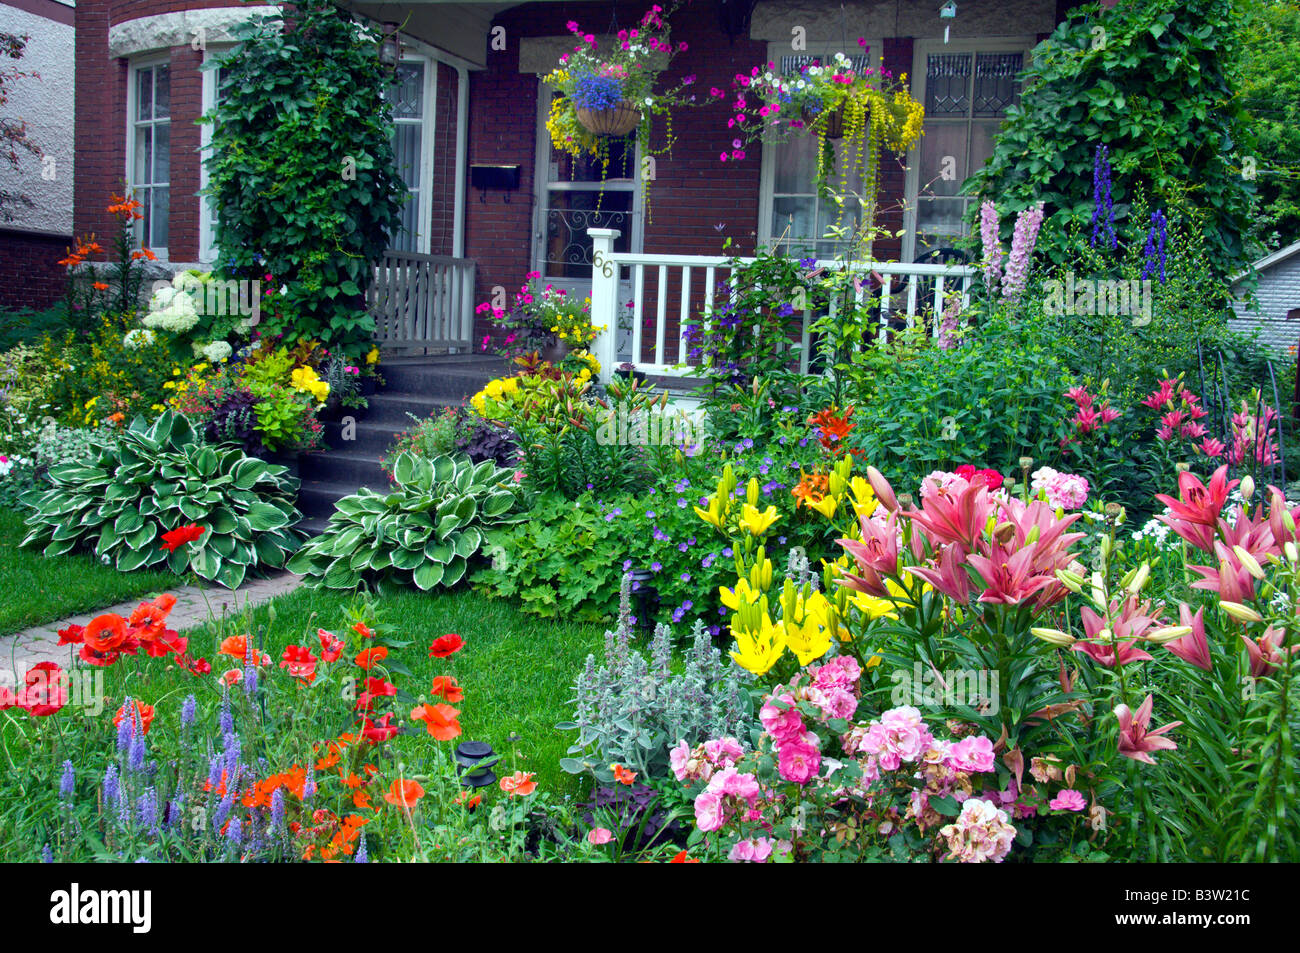 wolseley area home with decorative spring flowers in the